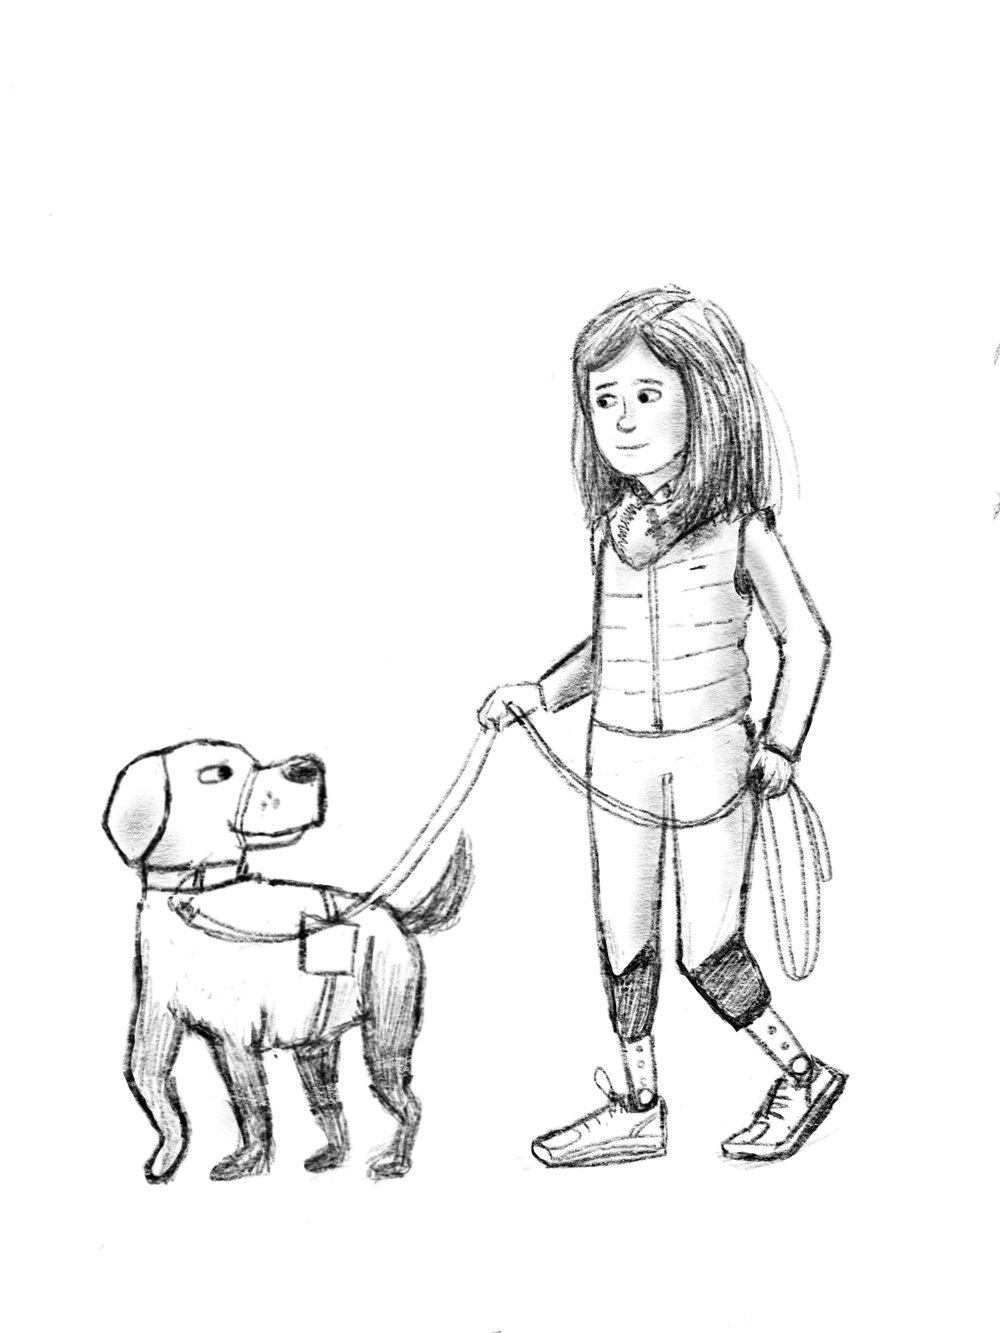 An early concept drawing of Jessica and Rescue. In later drawings I was sure to put Rescue  next  to Jessica rather than leading her as service dogs do. Its seeing eye dogs that walk in front of their human counterparts.